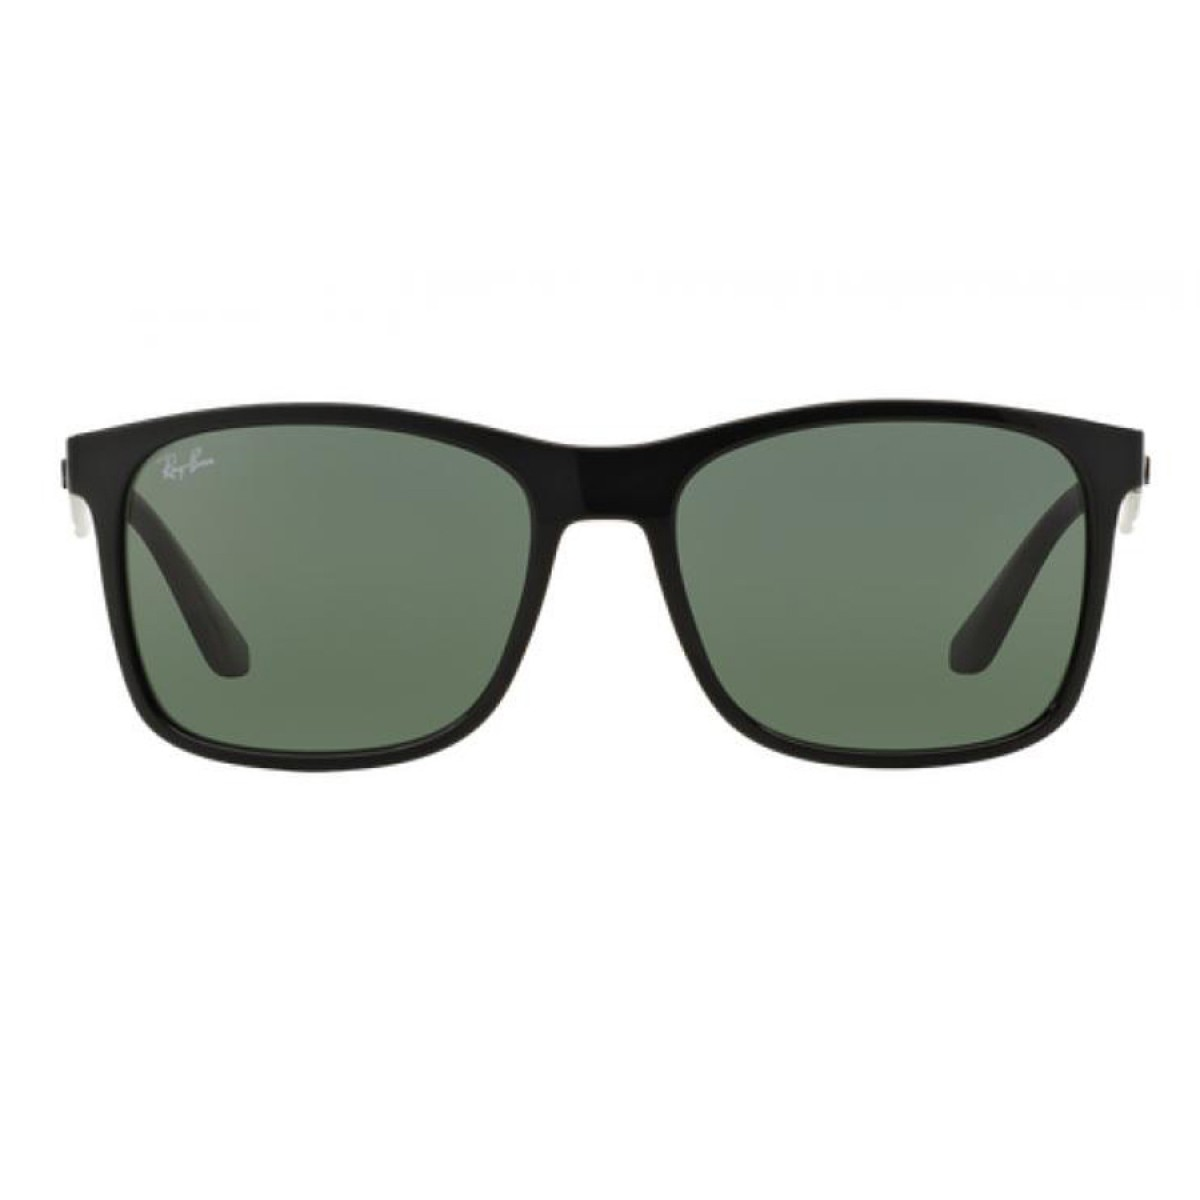 4d7cb5dd06c Ray Ban Highstreet Men Sunglasses RB4232-601 71-57. Be the first to review  this product